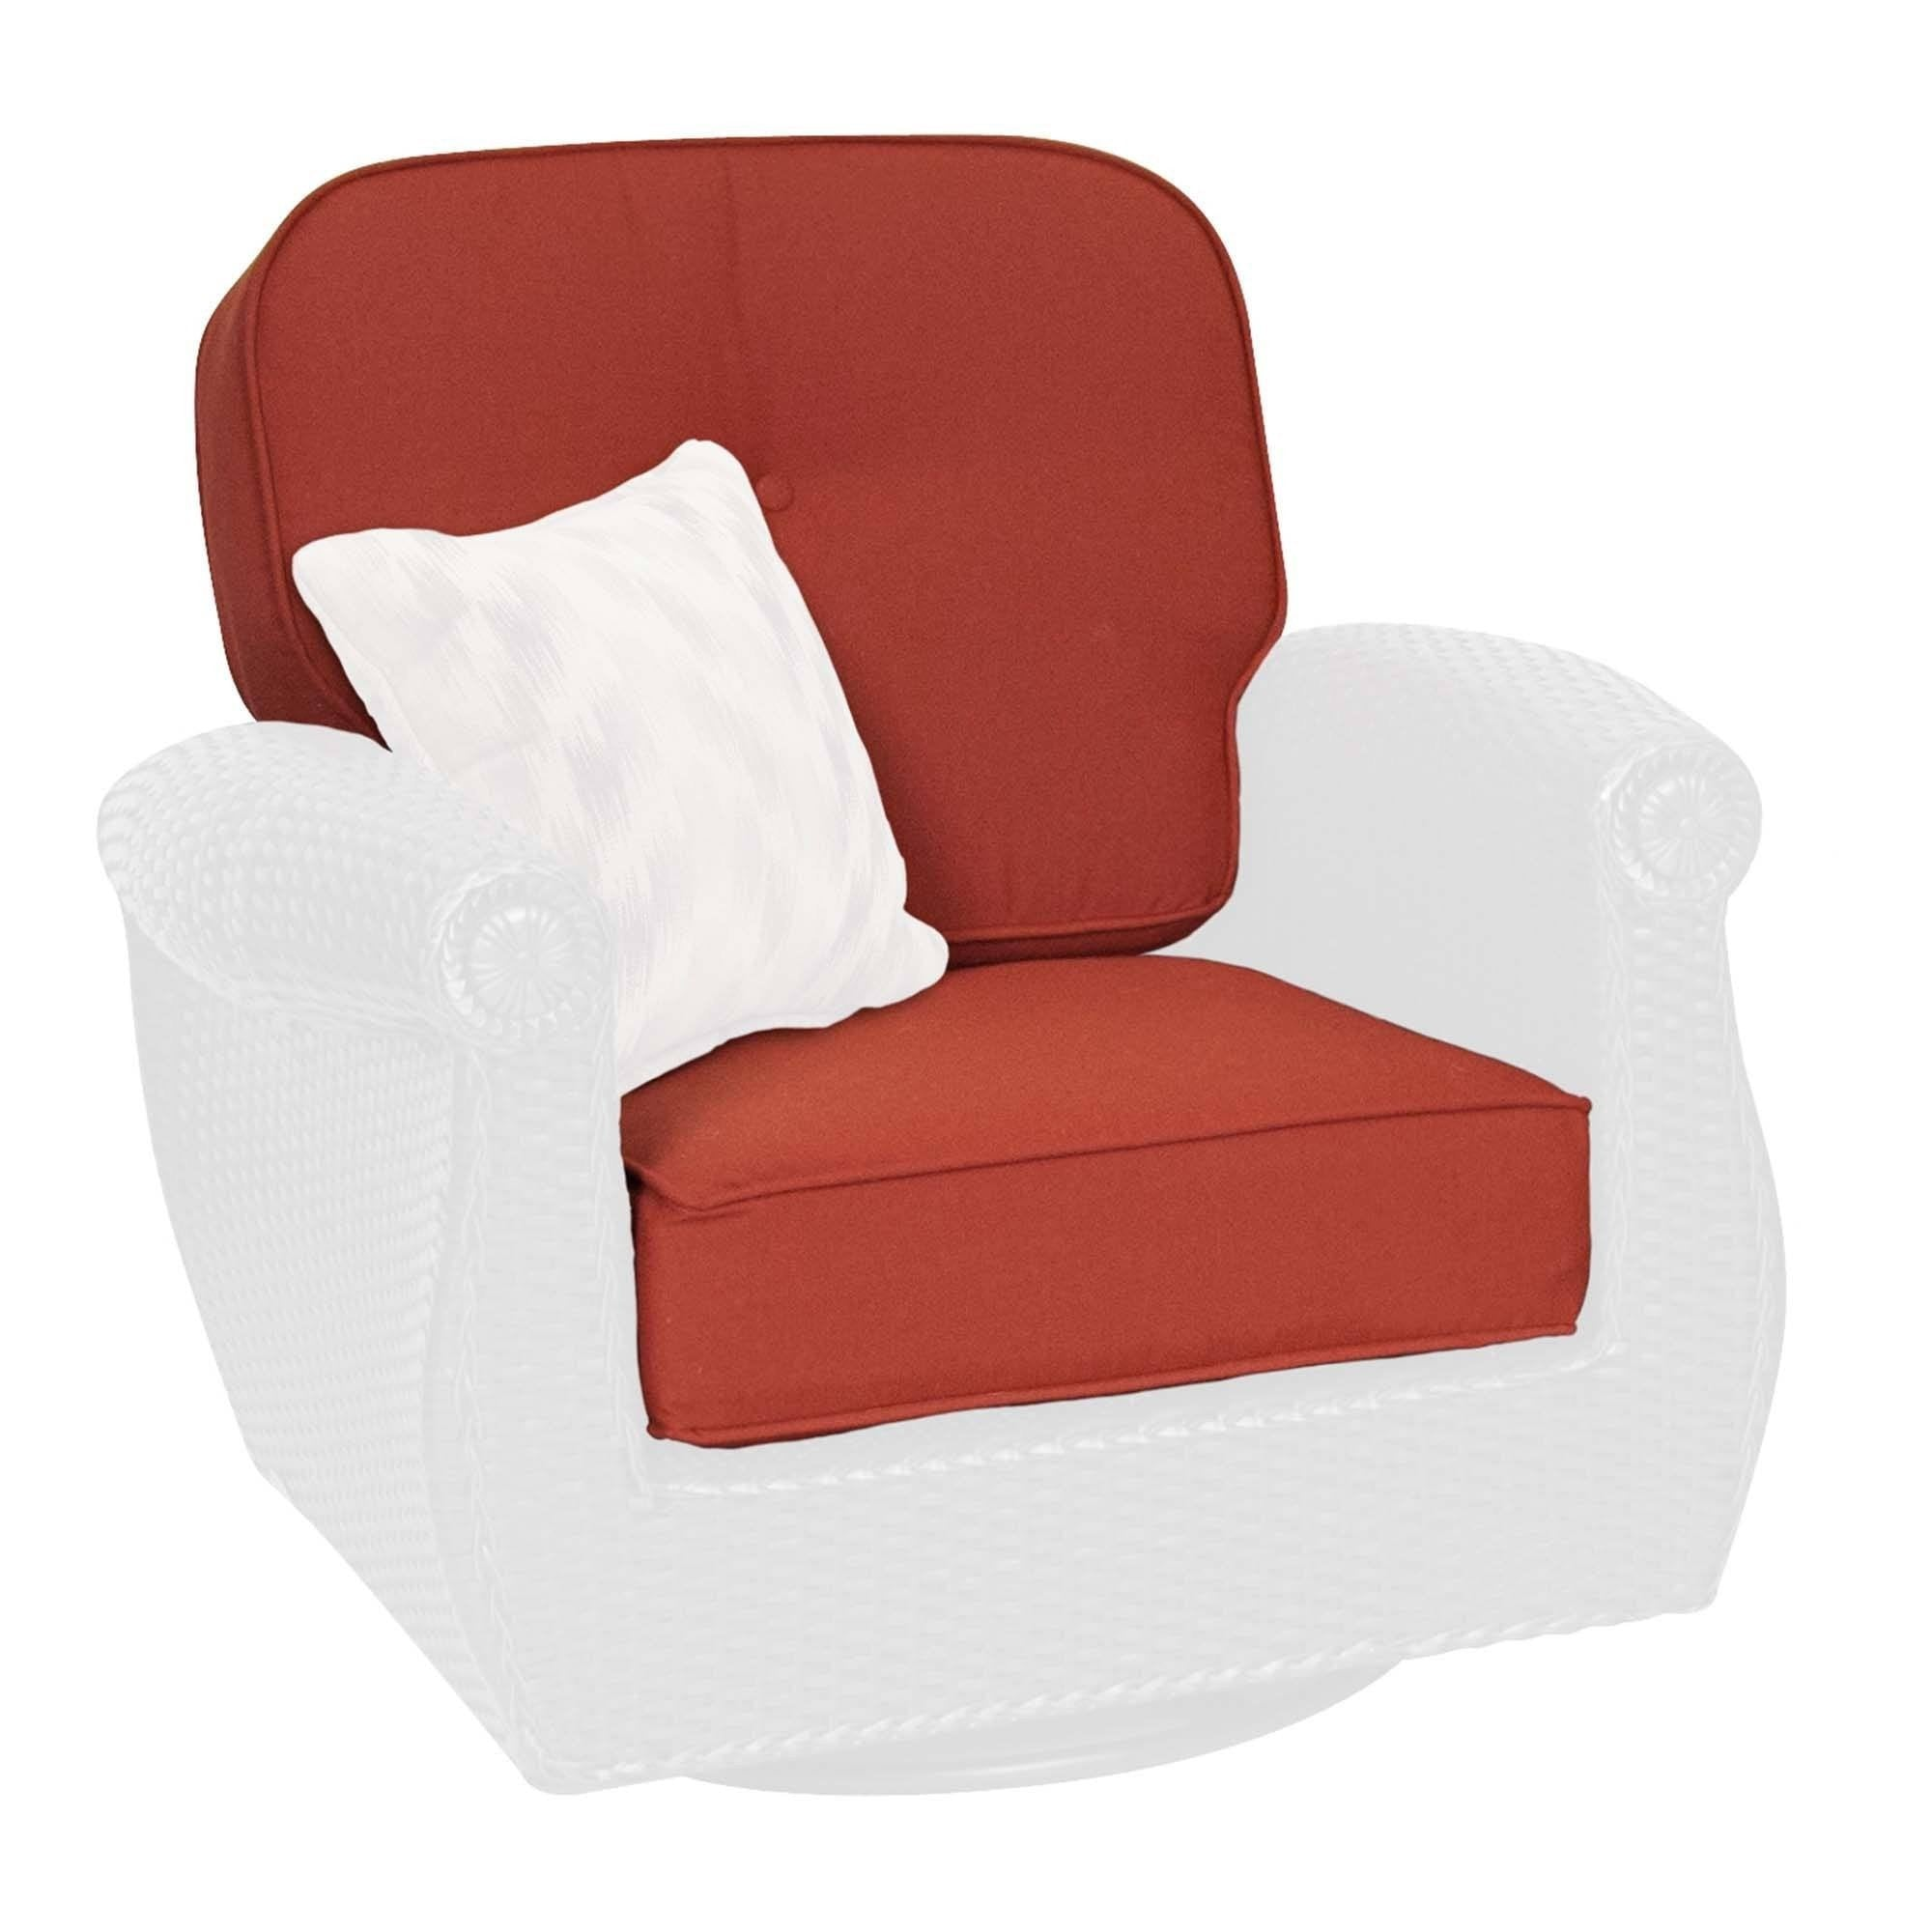 Replacement Cushions   Breckenridge Swivel Rocker Replacement Cushion Set